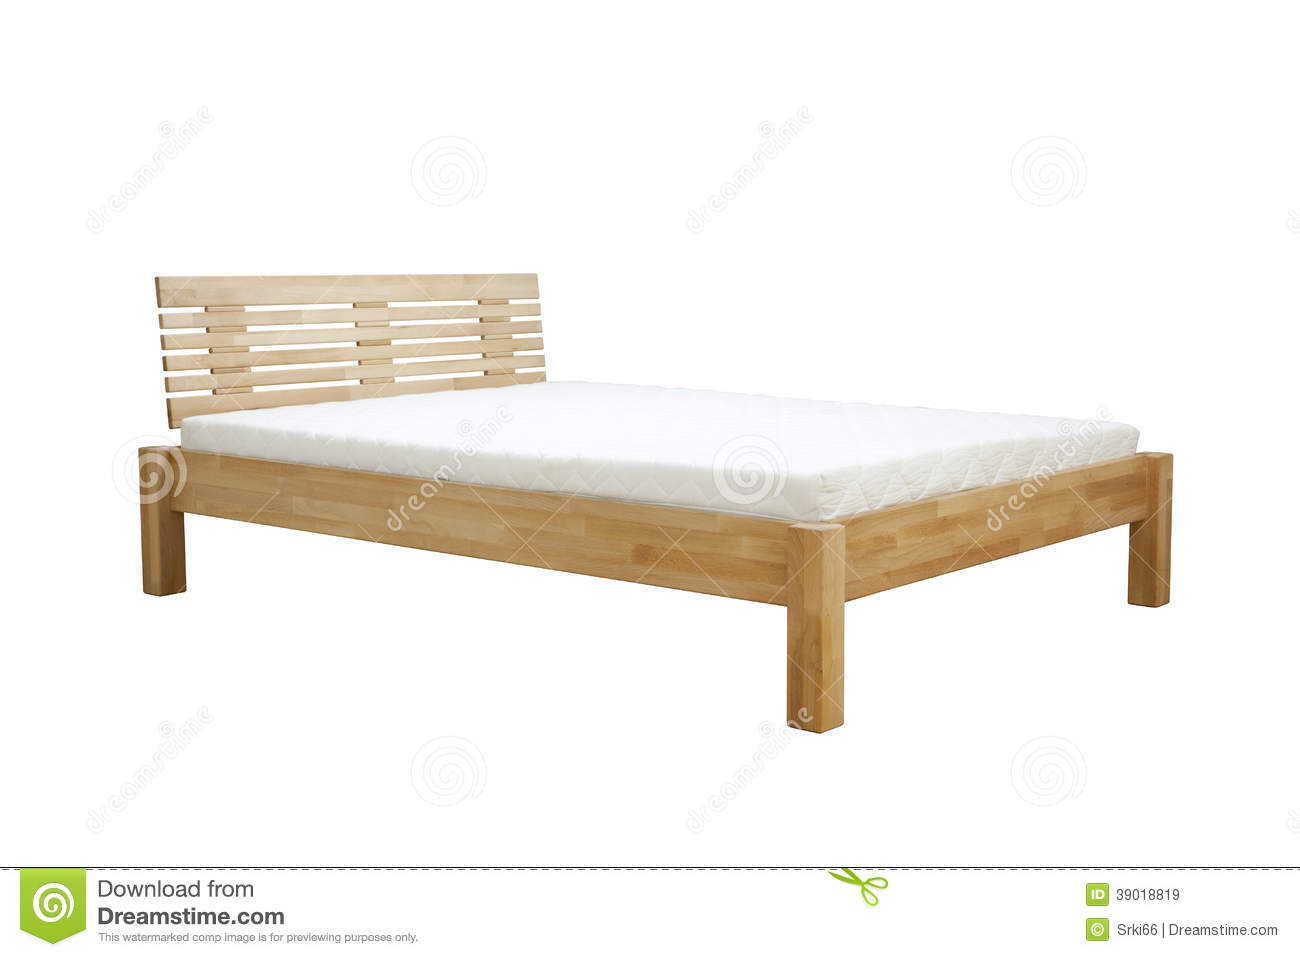 Very Impressive portraiture of Wooden Bed Stock Photo Image: 39018819 with #84A625 color and 1300x957 pixels